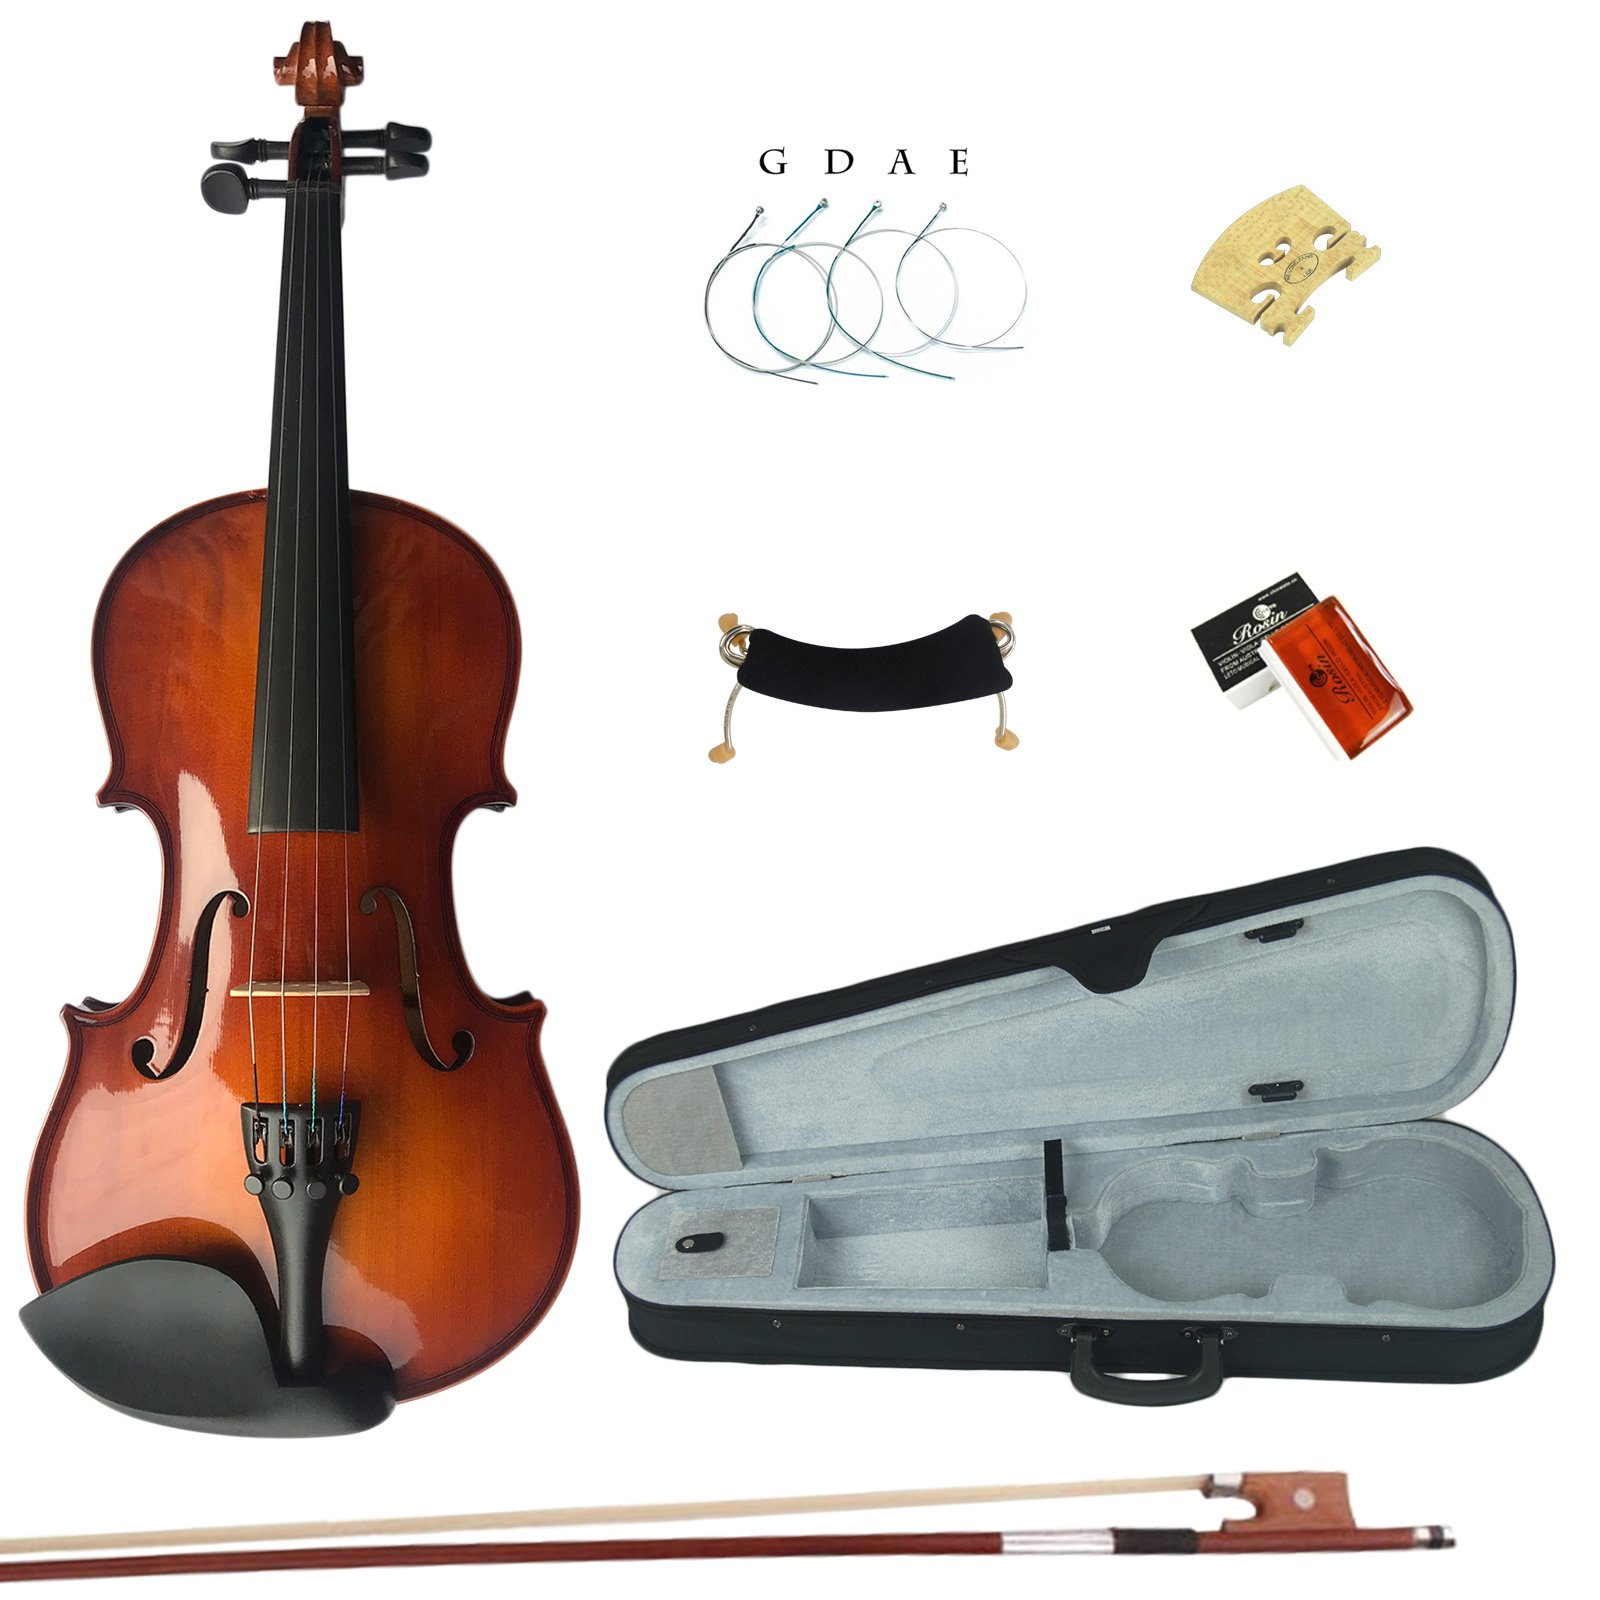 Esound 4/4 MB2 Solid Wood Satin Antique Violin with Hard Case, Shoulder Rest, Bow, Rosin and Extra Strings (Full Size)